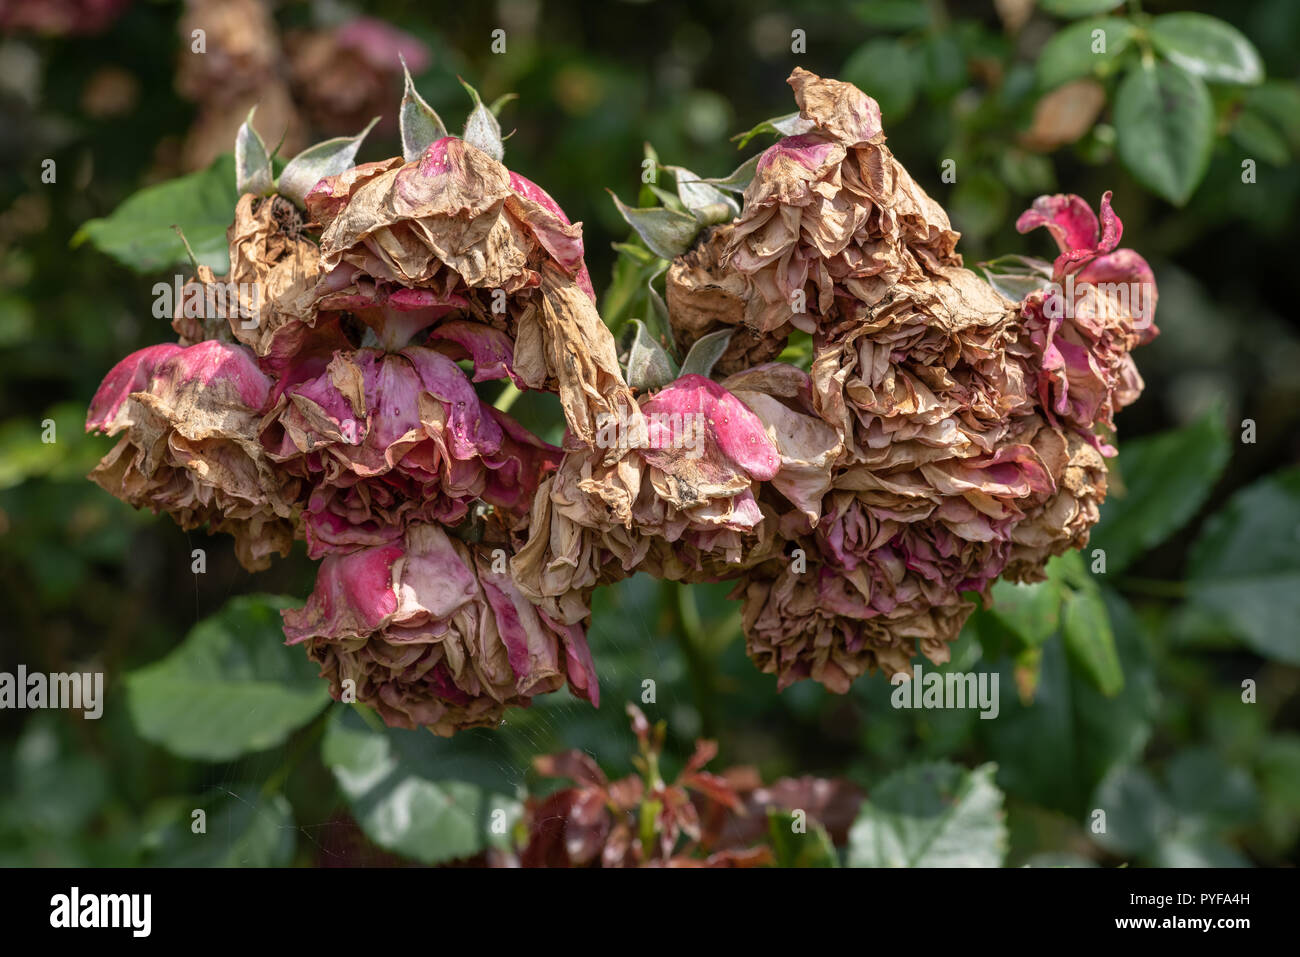 Color outdoor nature flower image of a fading lush bunch rose blossoms on natural blurred green background,symbolic age,decay,fade,wrinkled - Stock Image